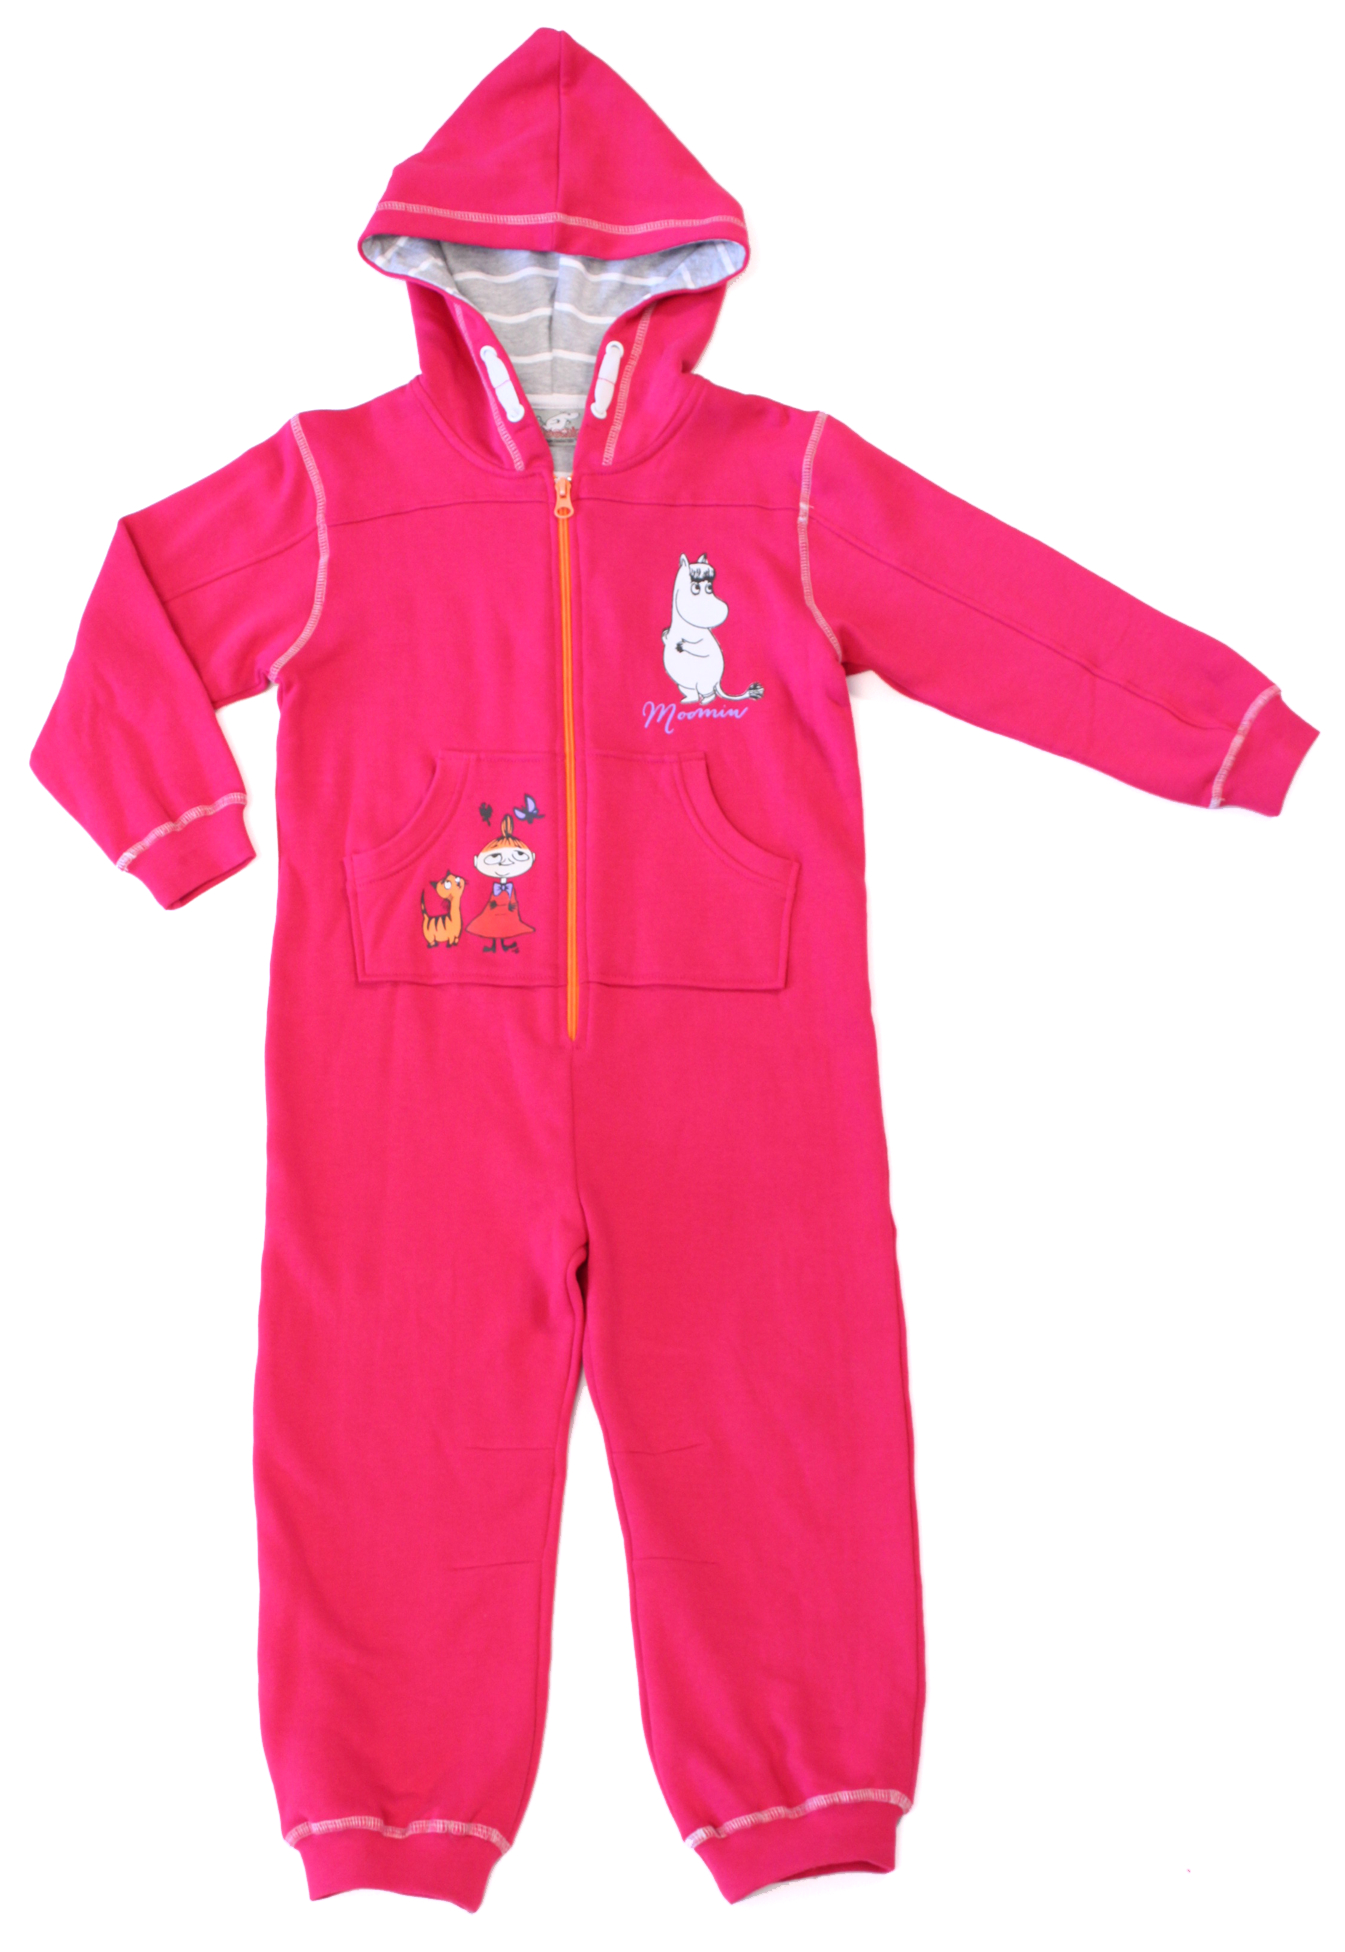 Nipeco college overall pink